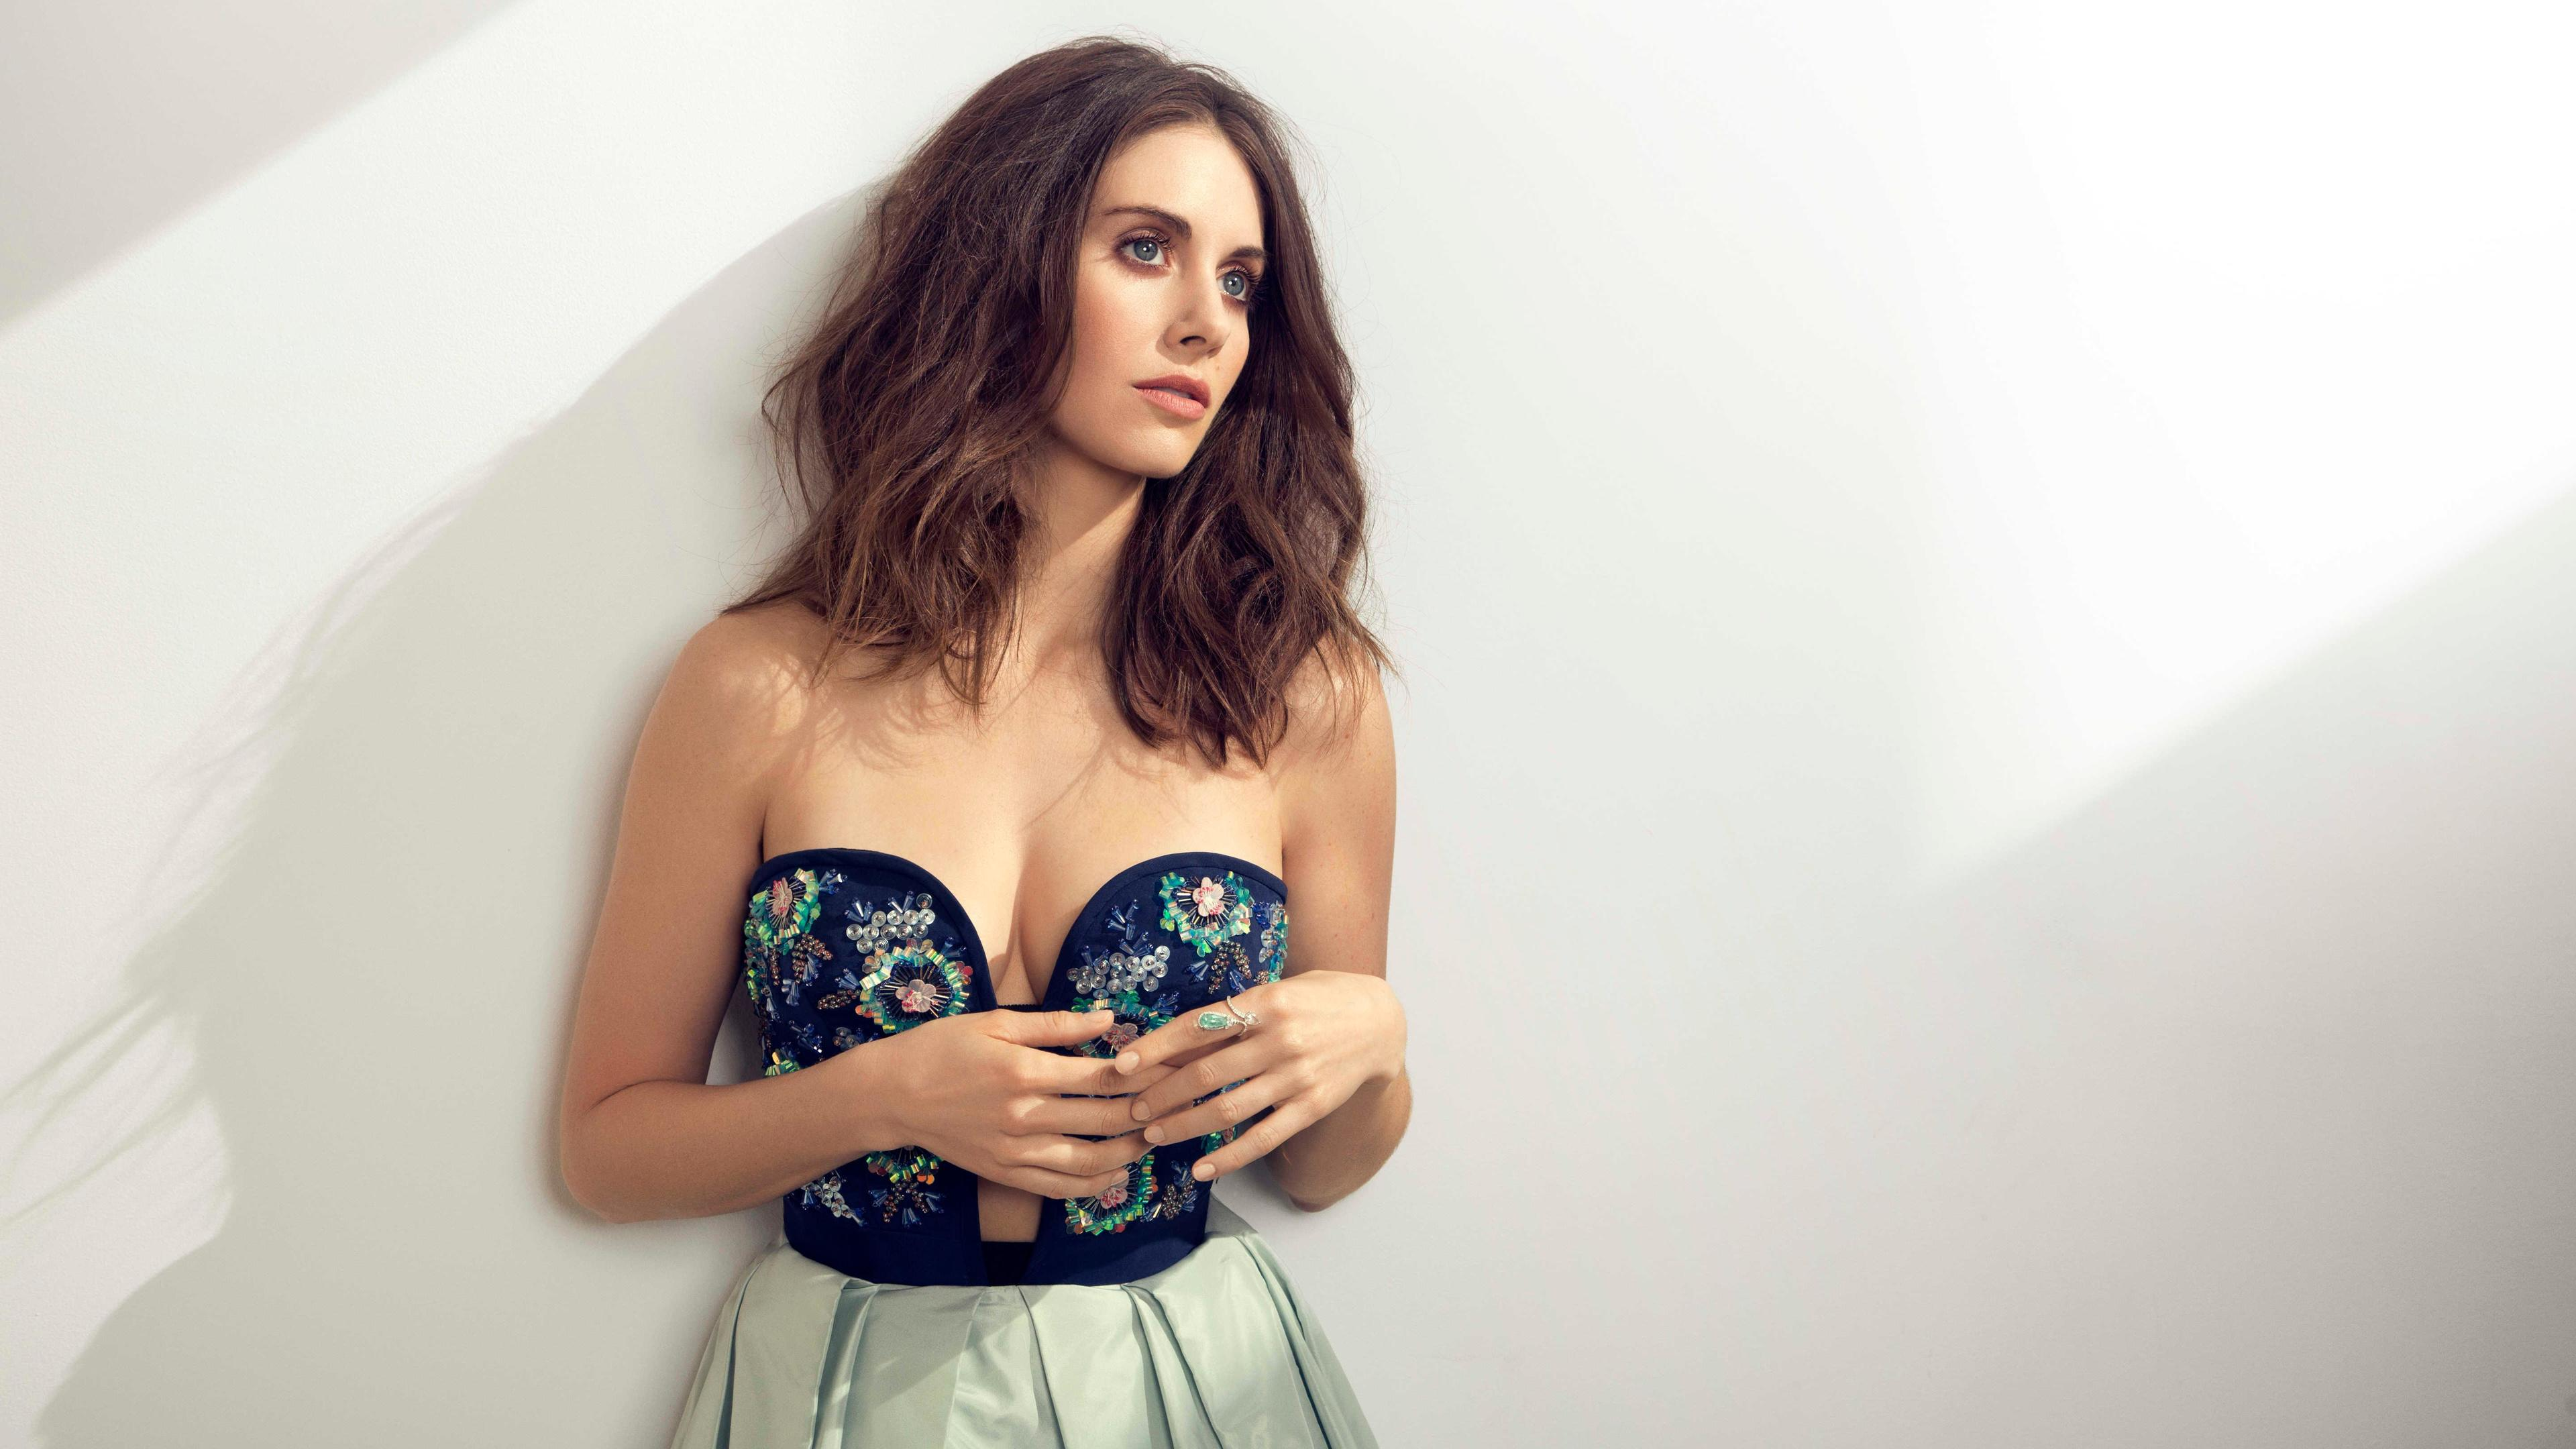 alison brie 2016 1536857385 - Alison Brie 2016 - girls wallpapers, celebrities wallpapers, alison brie wallpapers